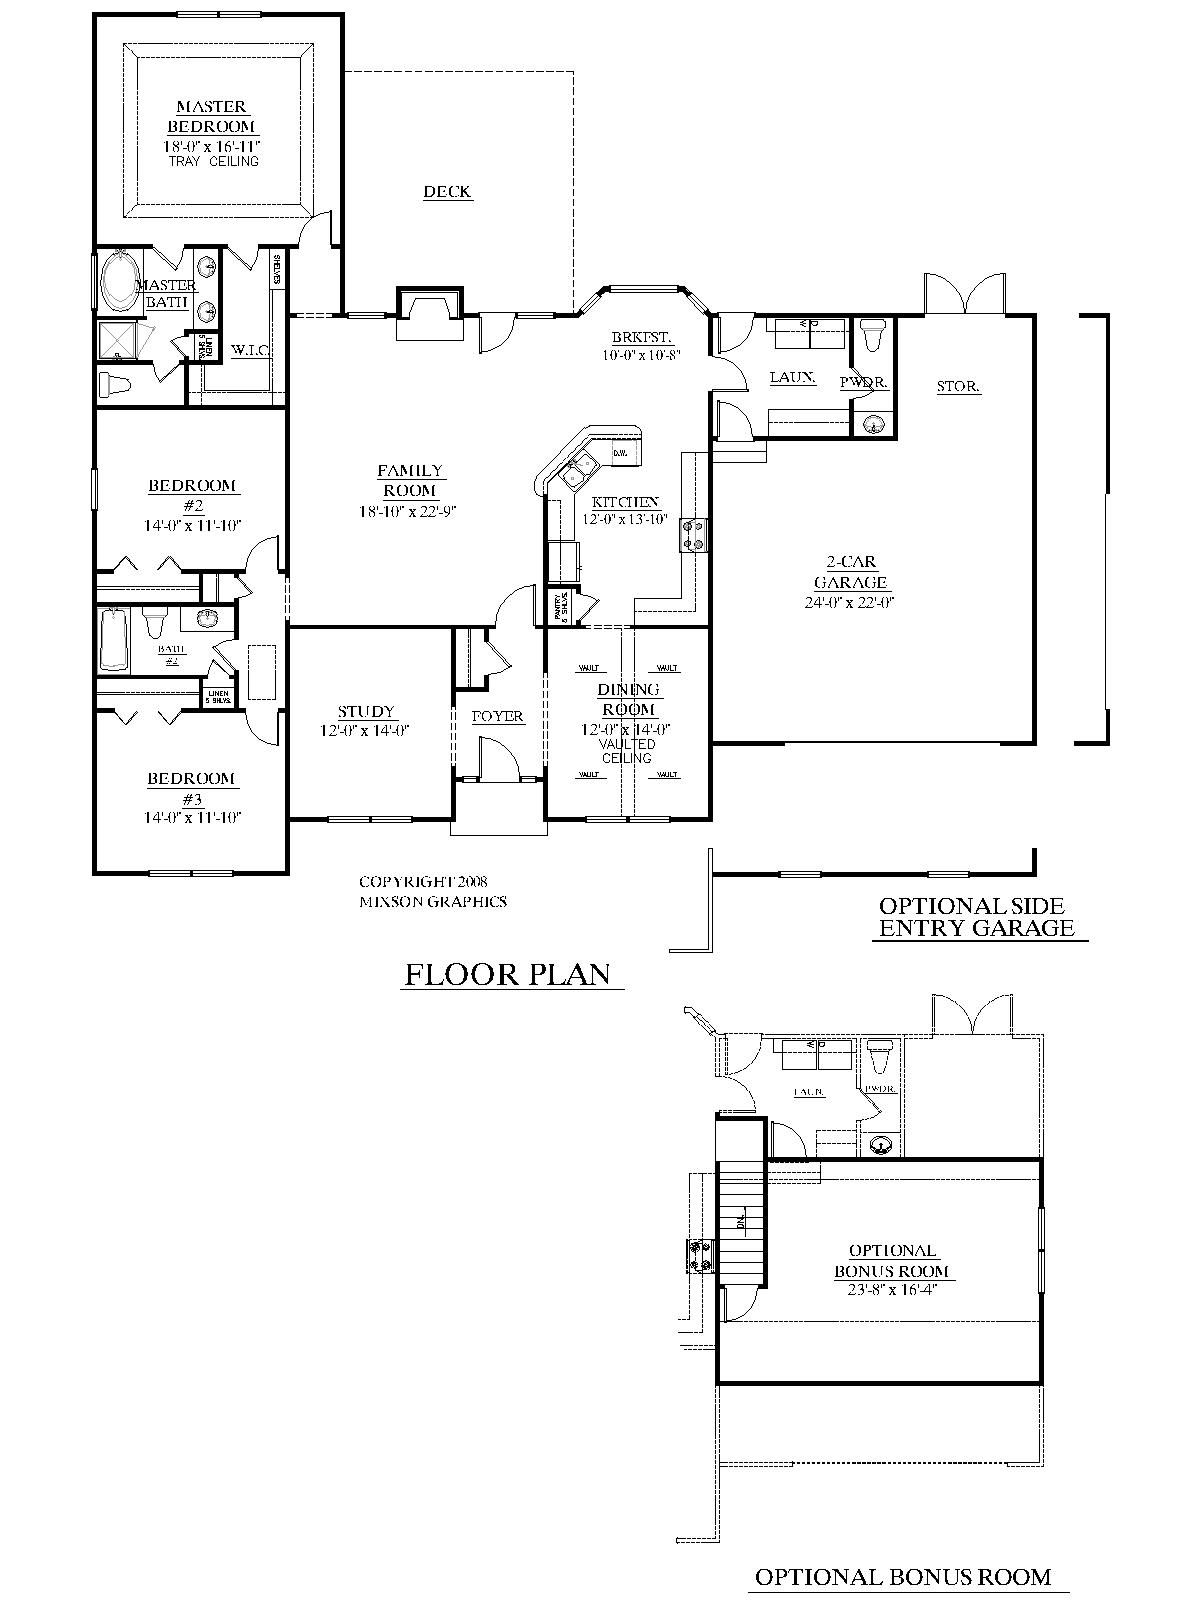 House Plan 2334-A Manning A floor plan   Home Plans   House ... on mount vernon home, ravenel home, perry home, ryan home, bethany home,